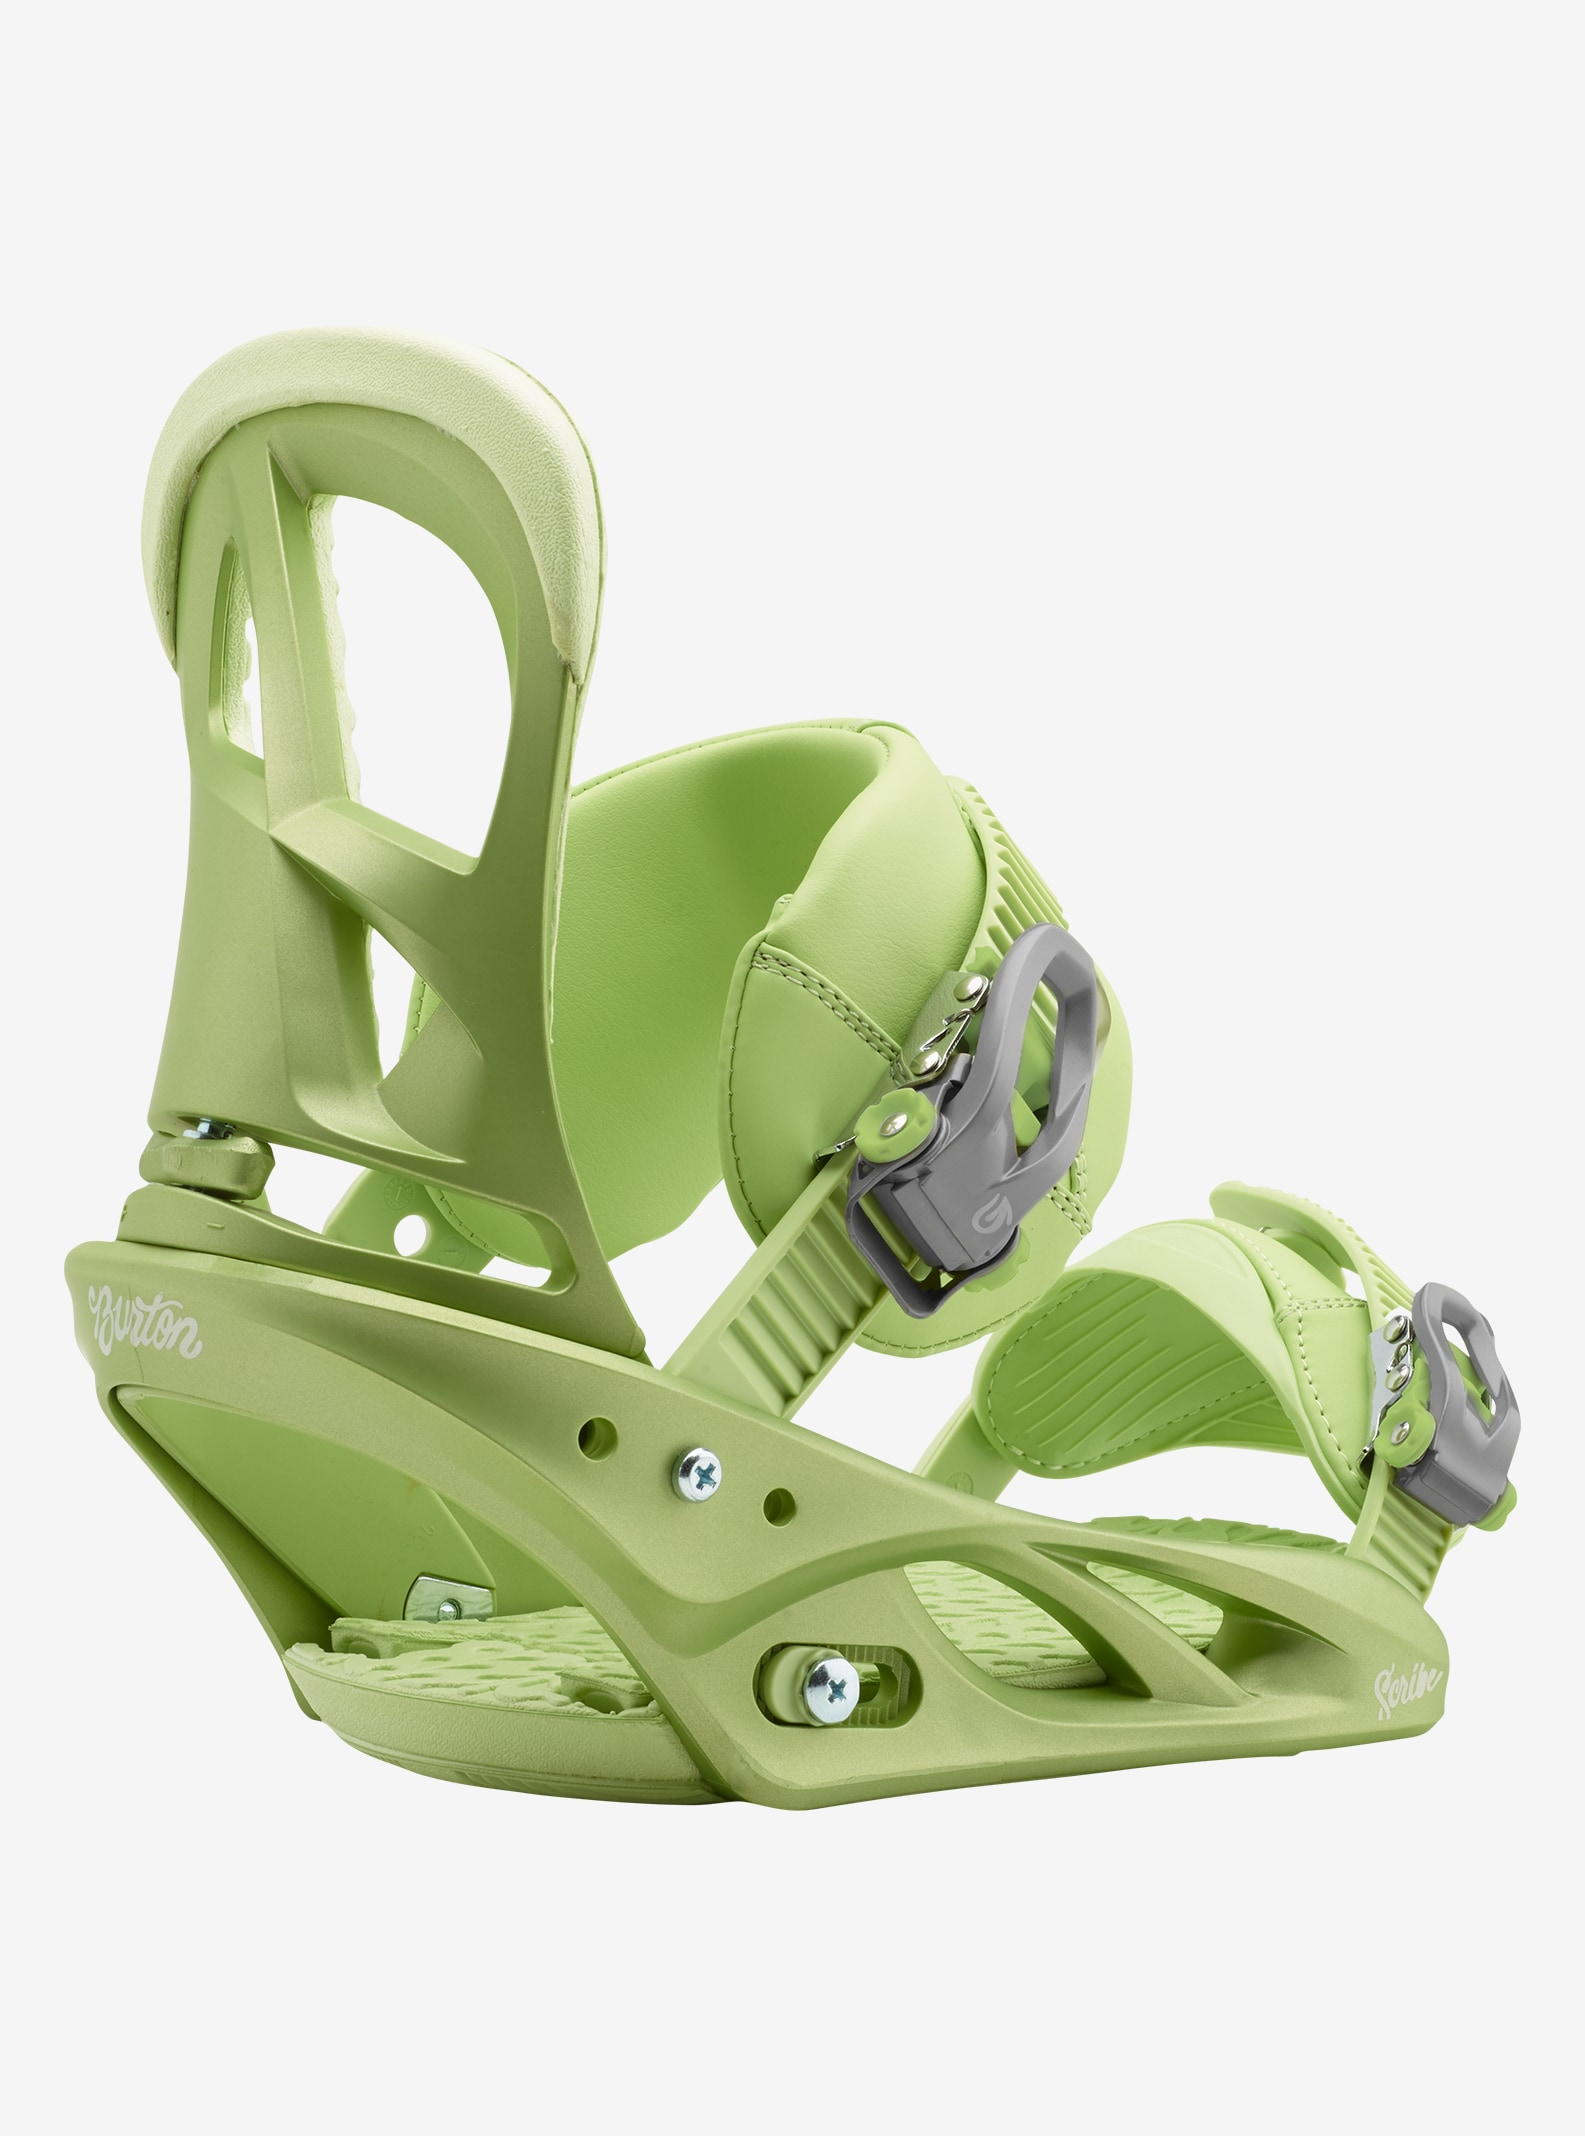 Women's Burton Scribe Snowboard Binding shown in Ivy